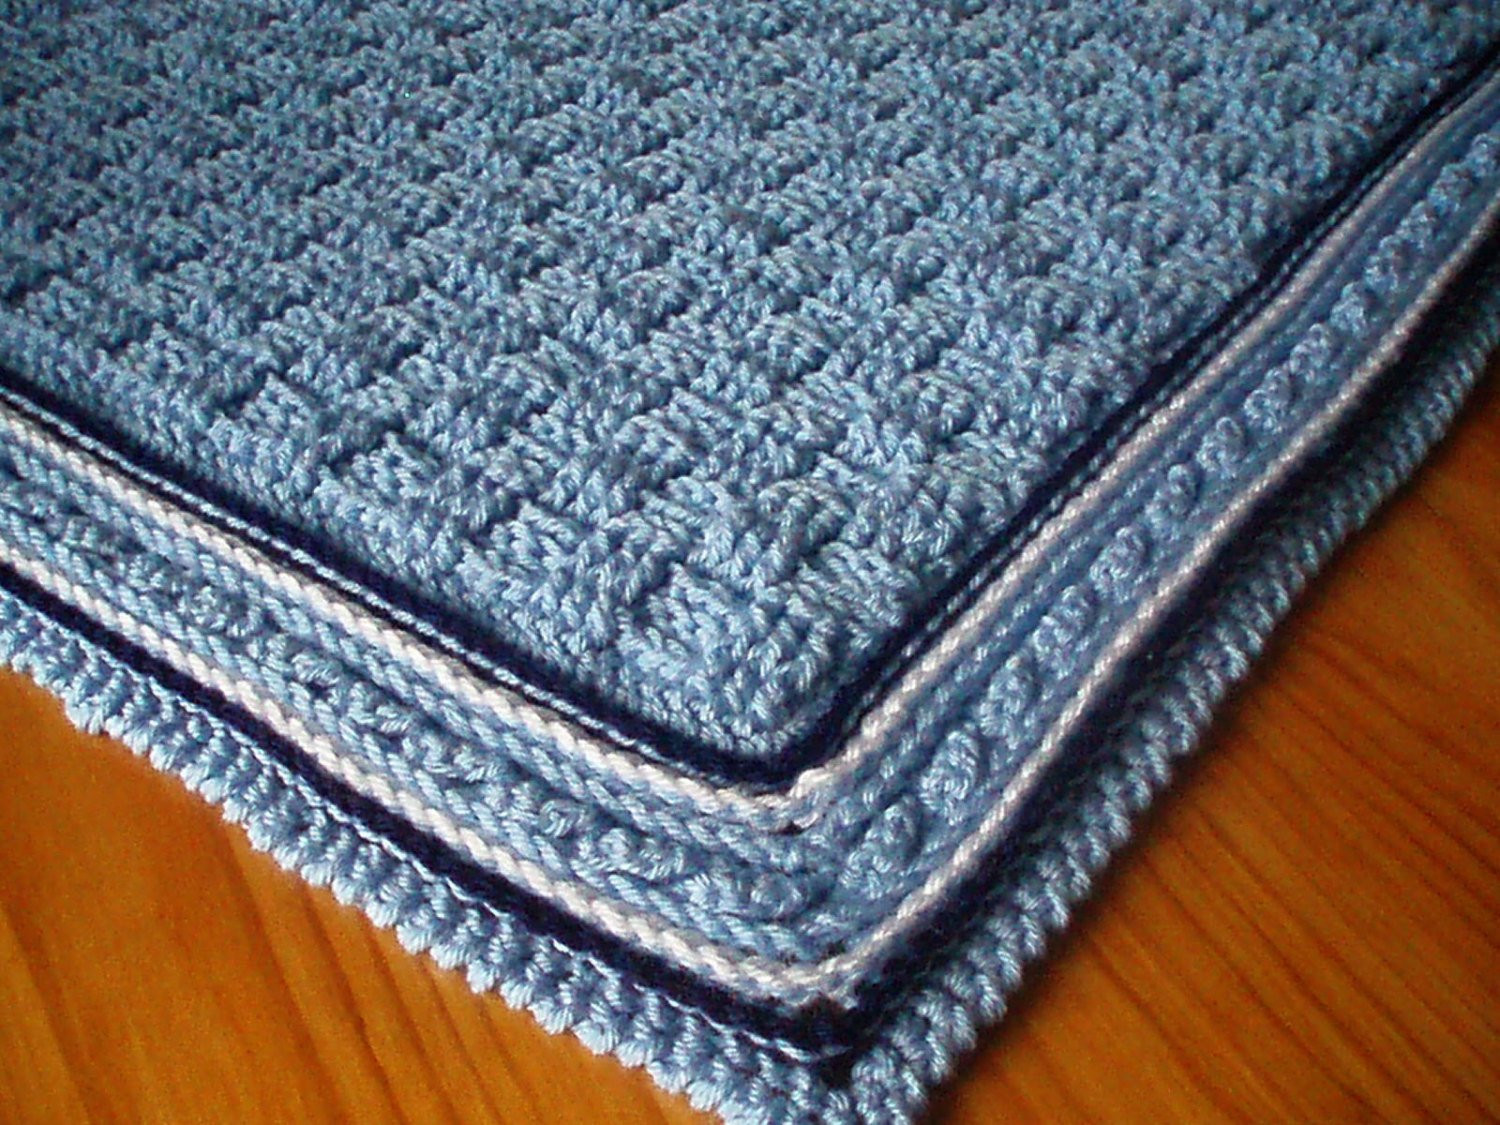 Baby Blanket Patterns Lovely Crochet Pattern for Baby Blanket Basket Weave Stitch Baby Of Delightful 50 Pictures Baby Blanket Patterns